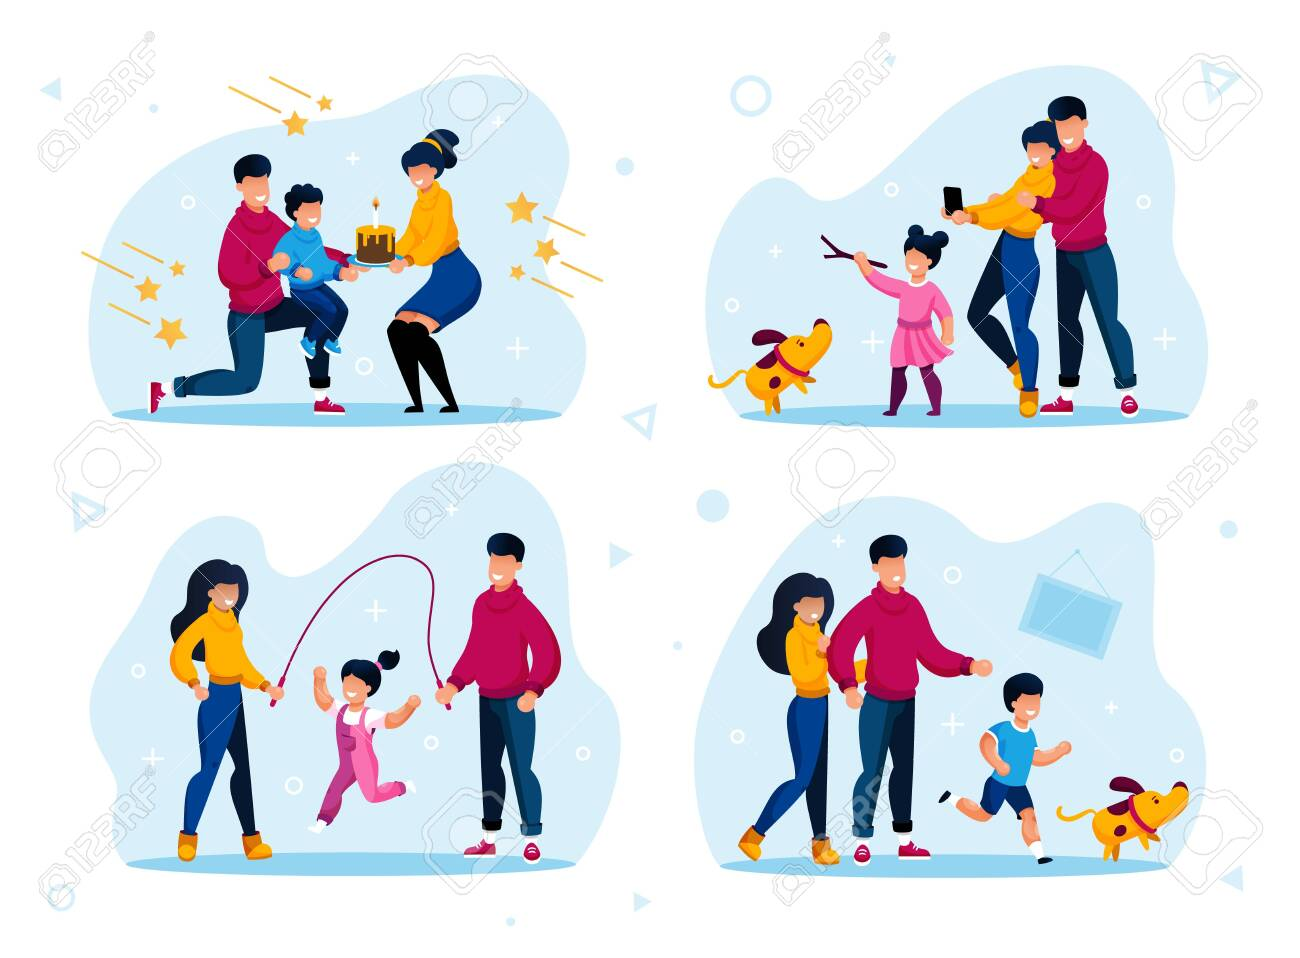 Family Relationships Happy Moments Trendy Flat Vector Concepts Set. Parents Celebrating Kids Birthday, Child Playing with Dog, Daughter Jumping on Rope with Father and Mother Isolated Illustrations - 145549488